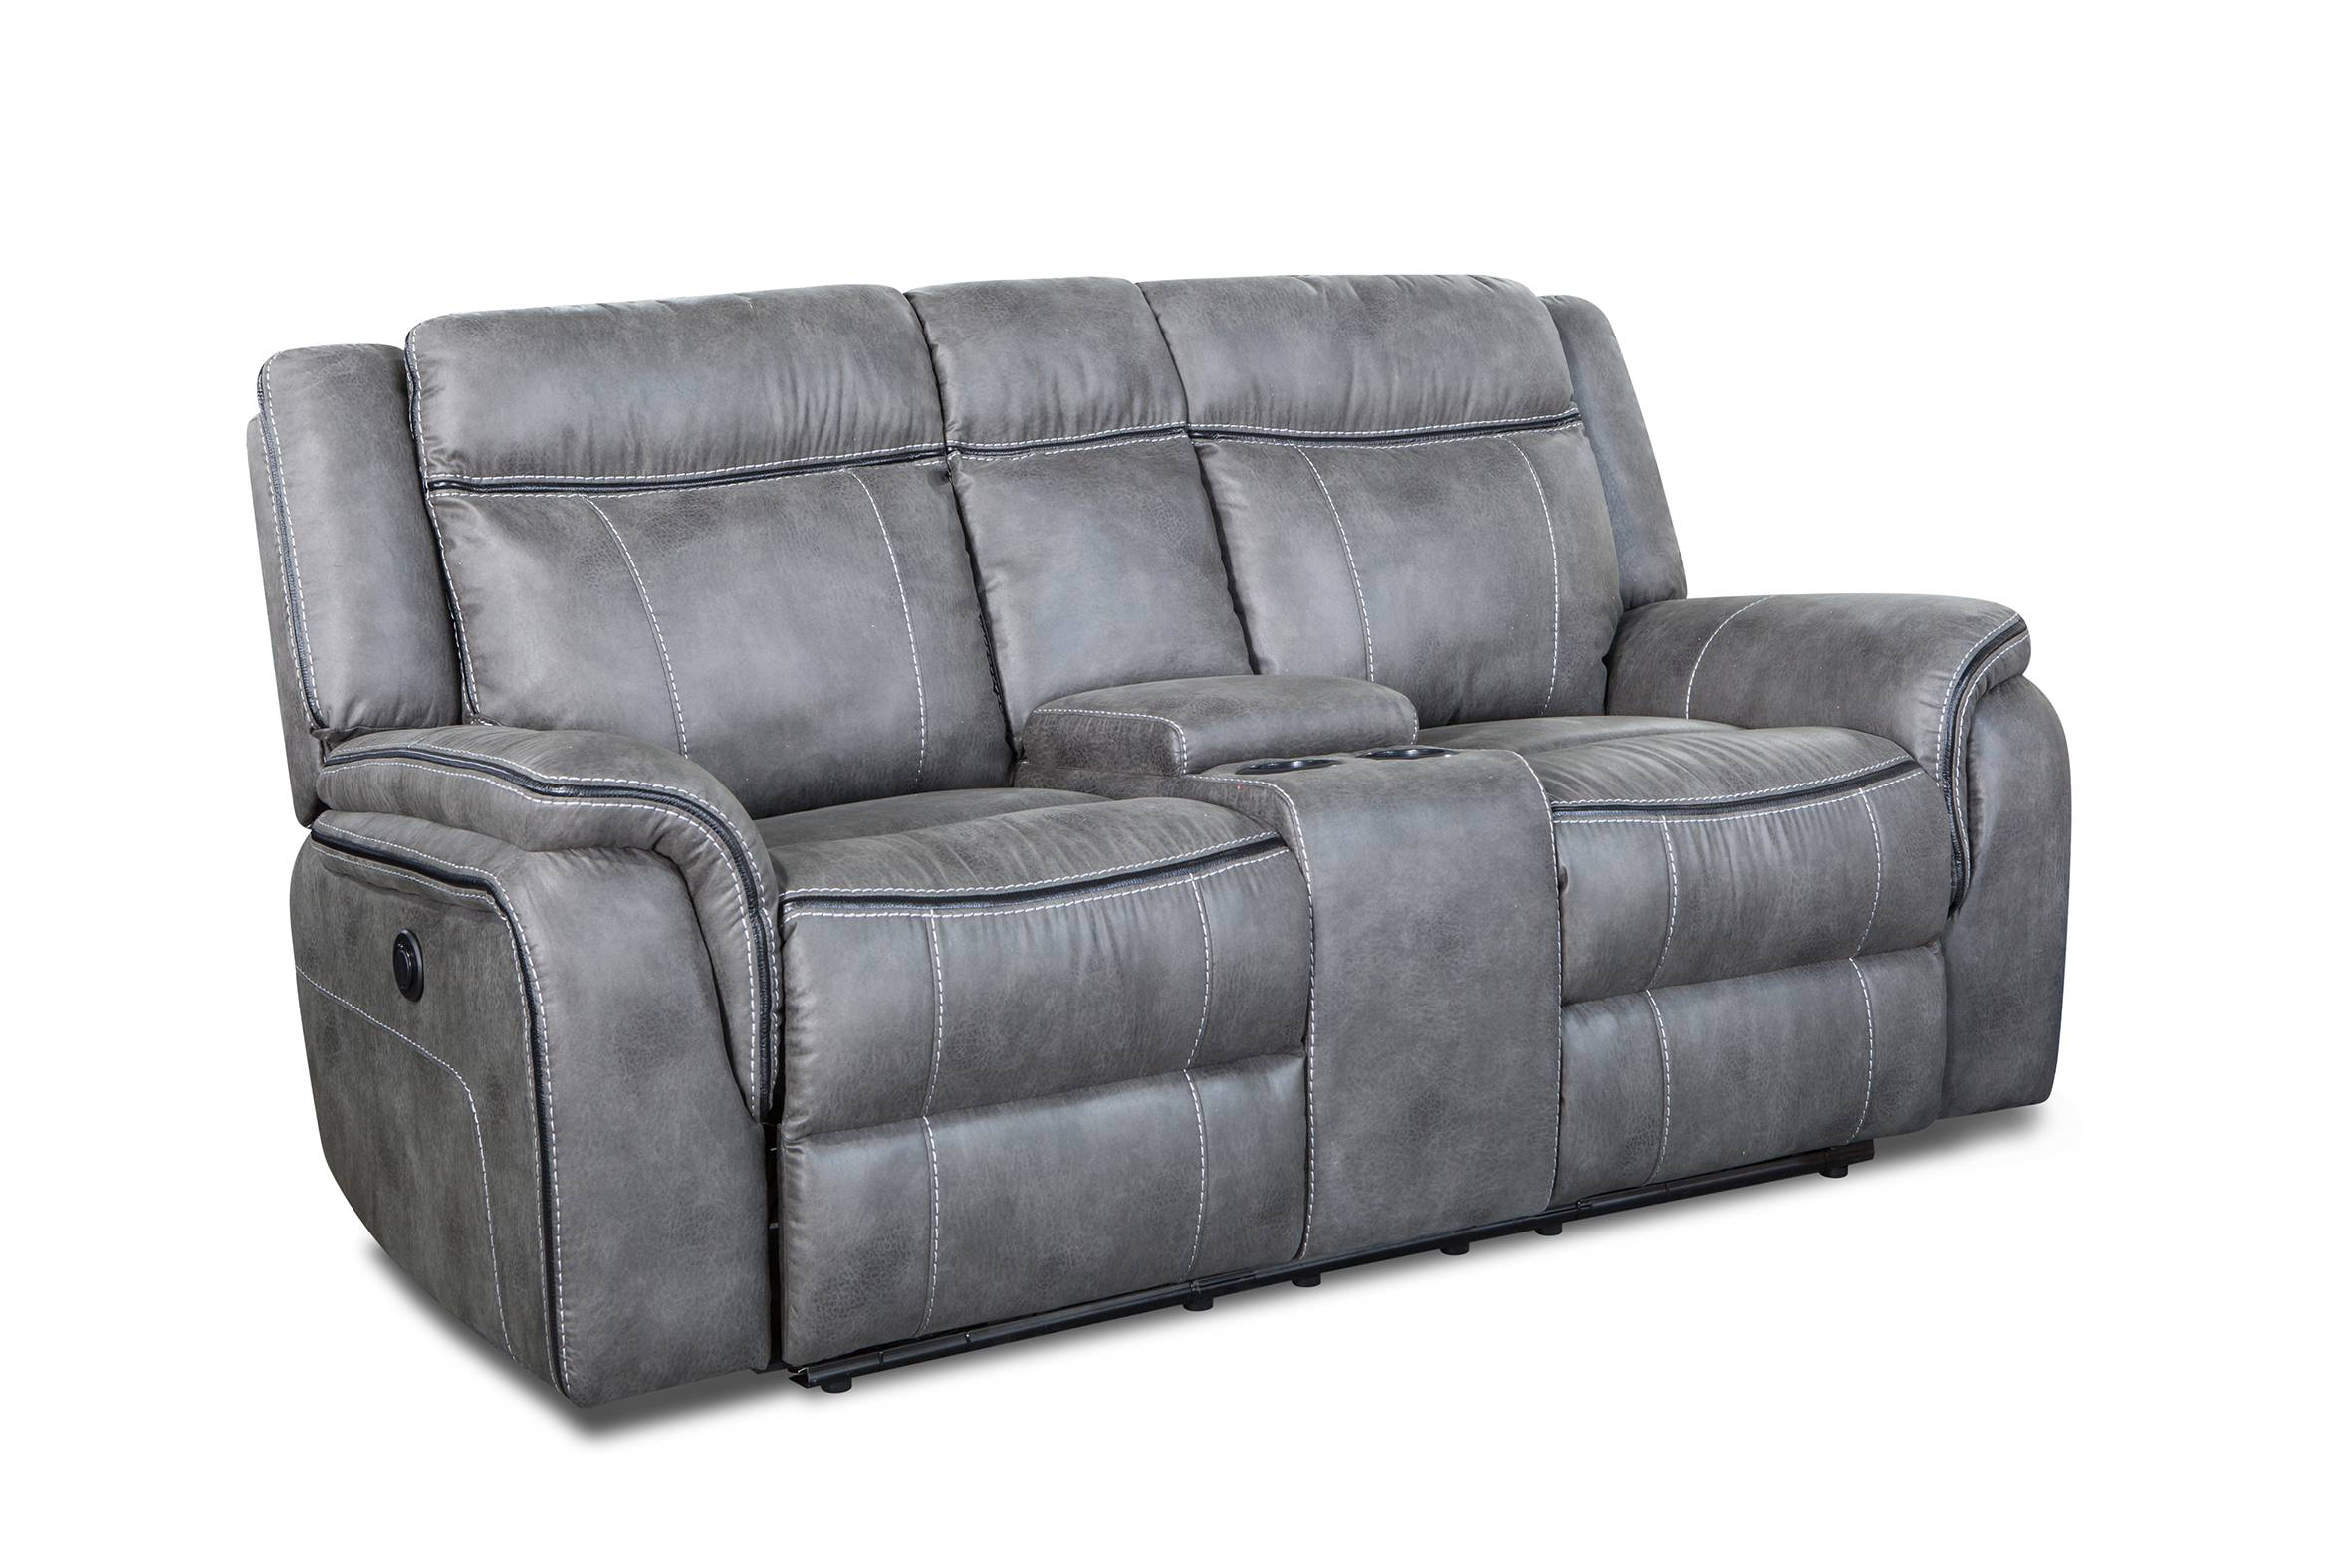 China supplier fancy home furniture 3 2 1 rocker recliner sofa